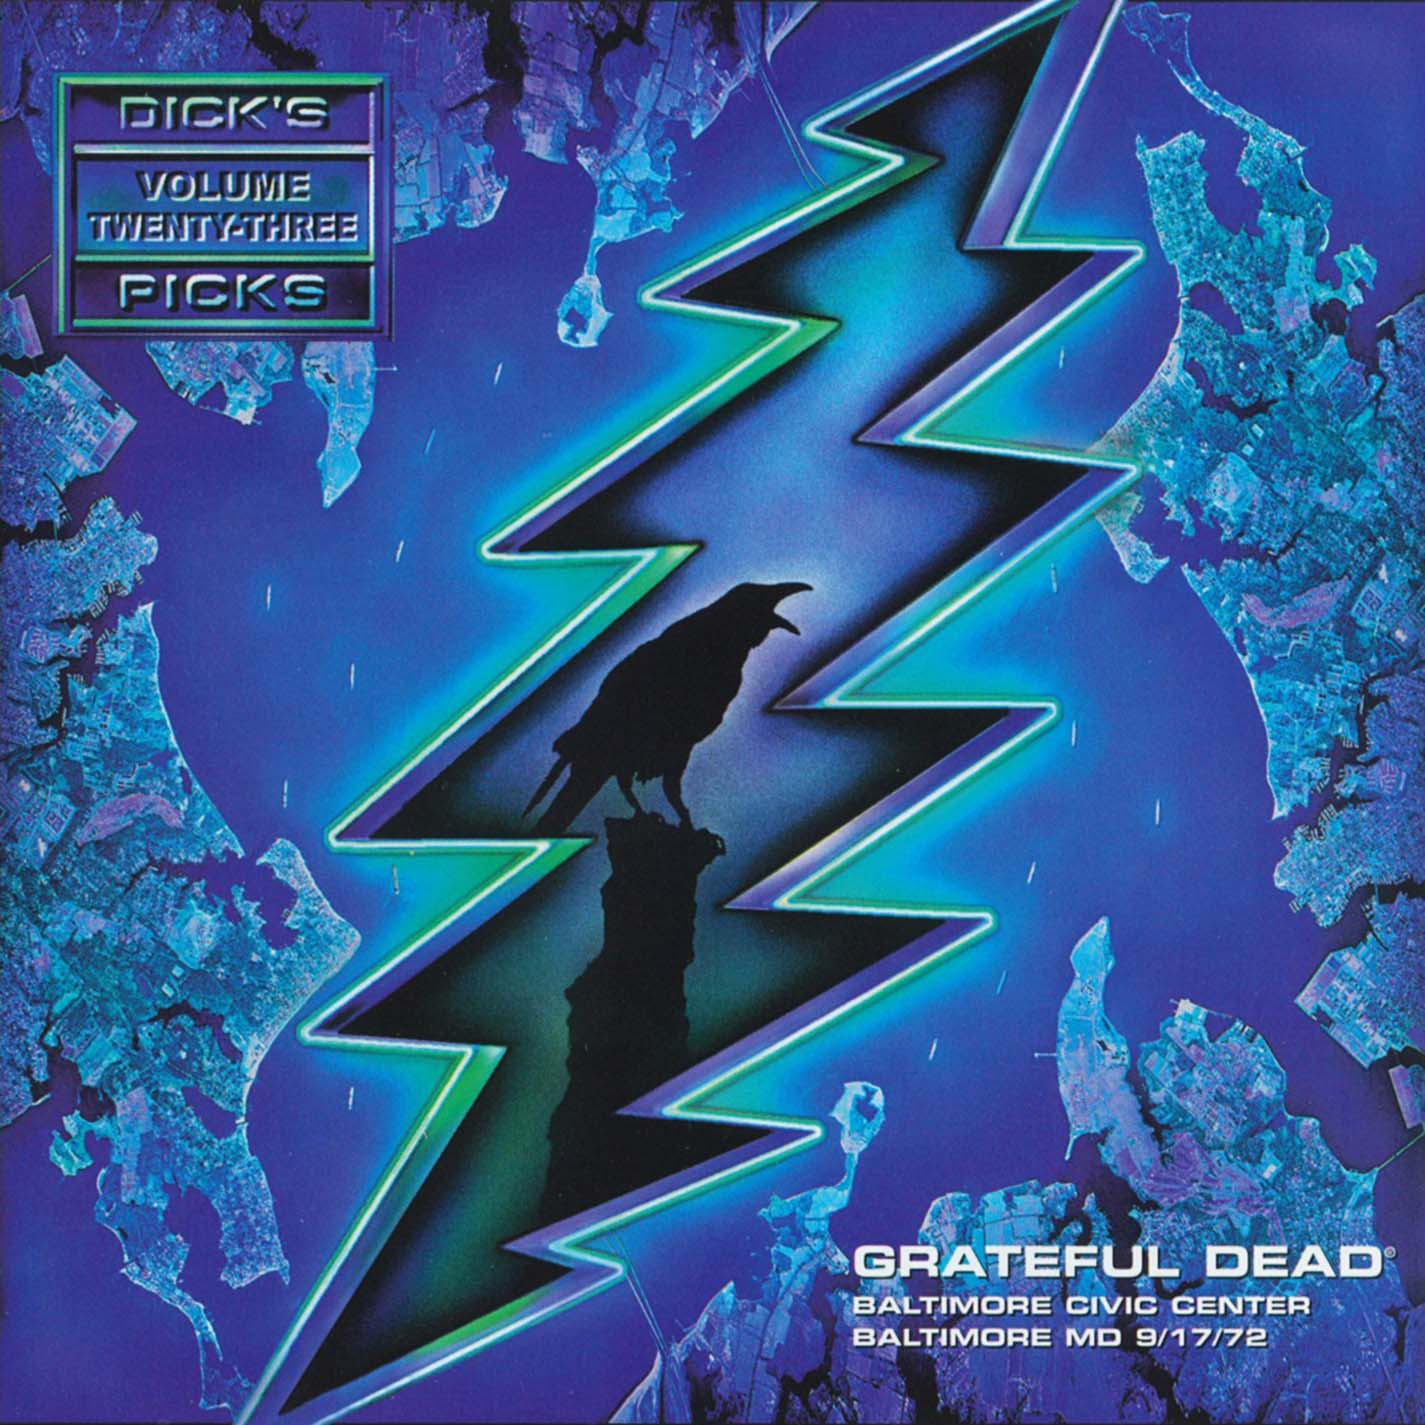 Grateful Dead Dick's Picks 23 album cover artwork